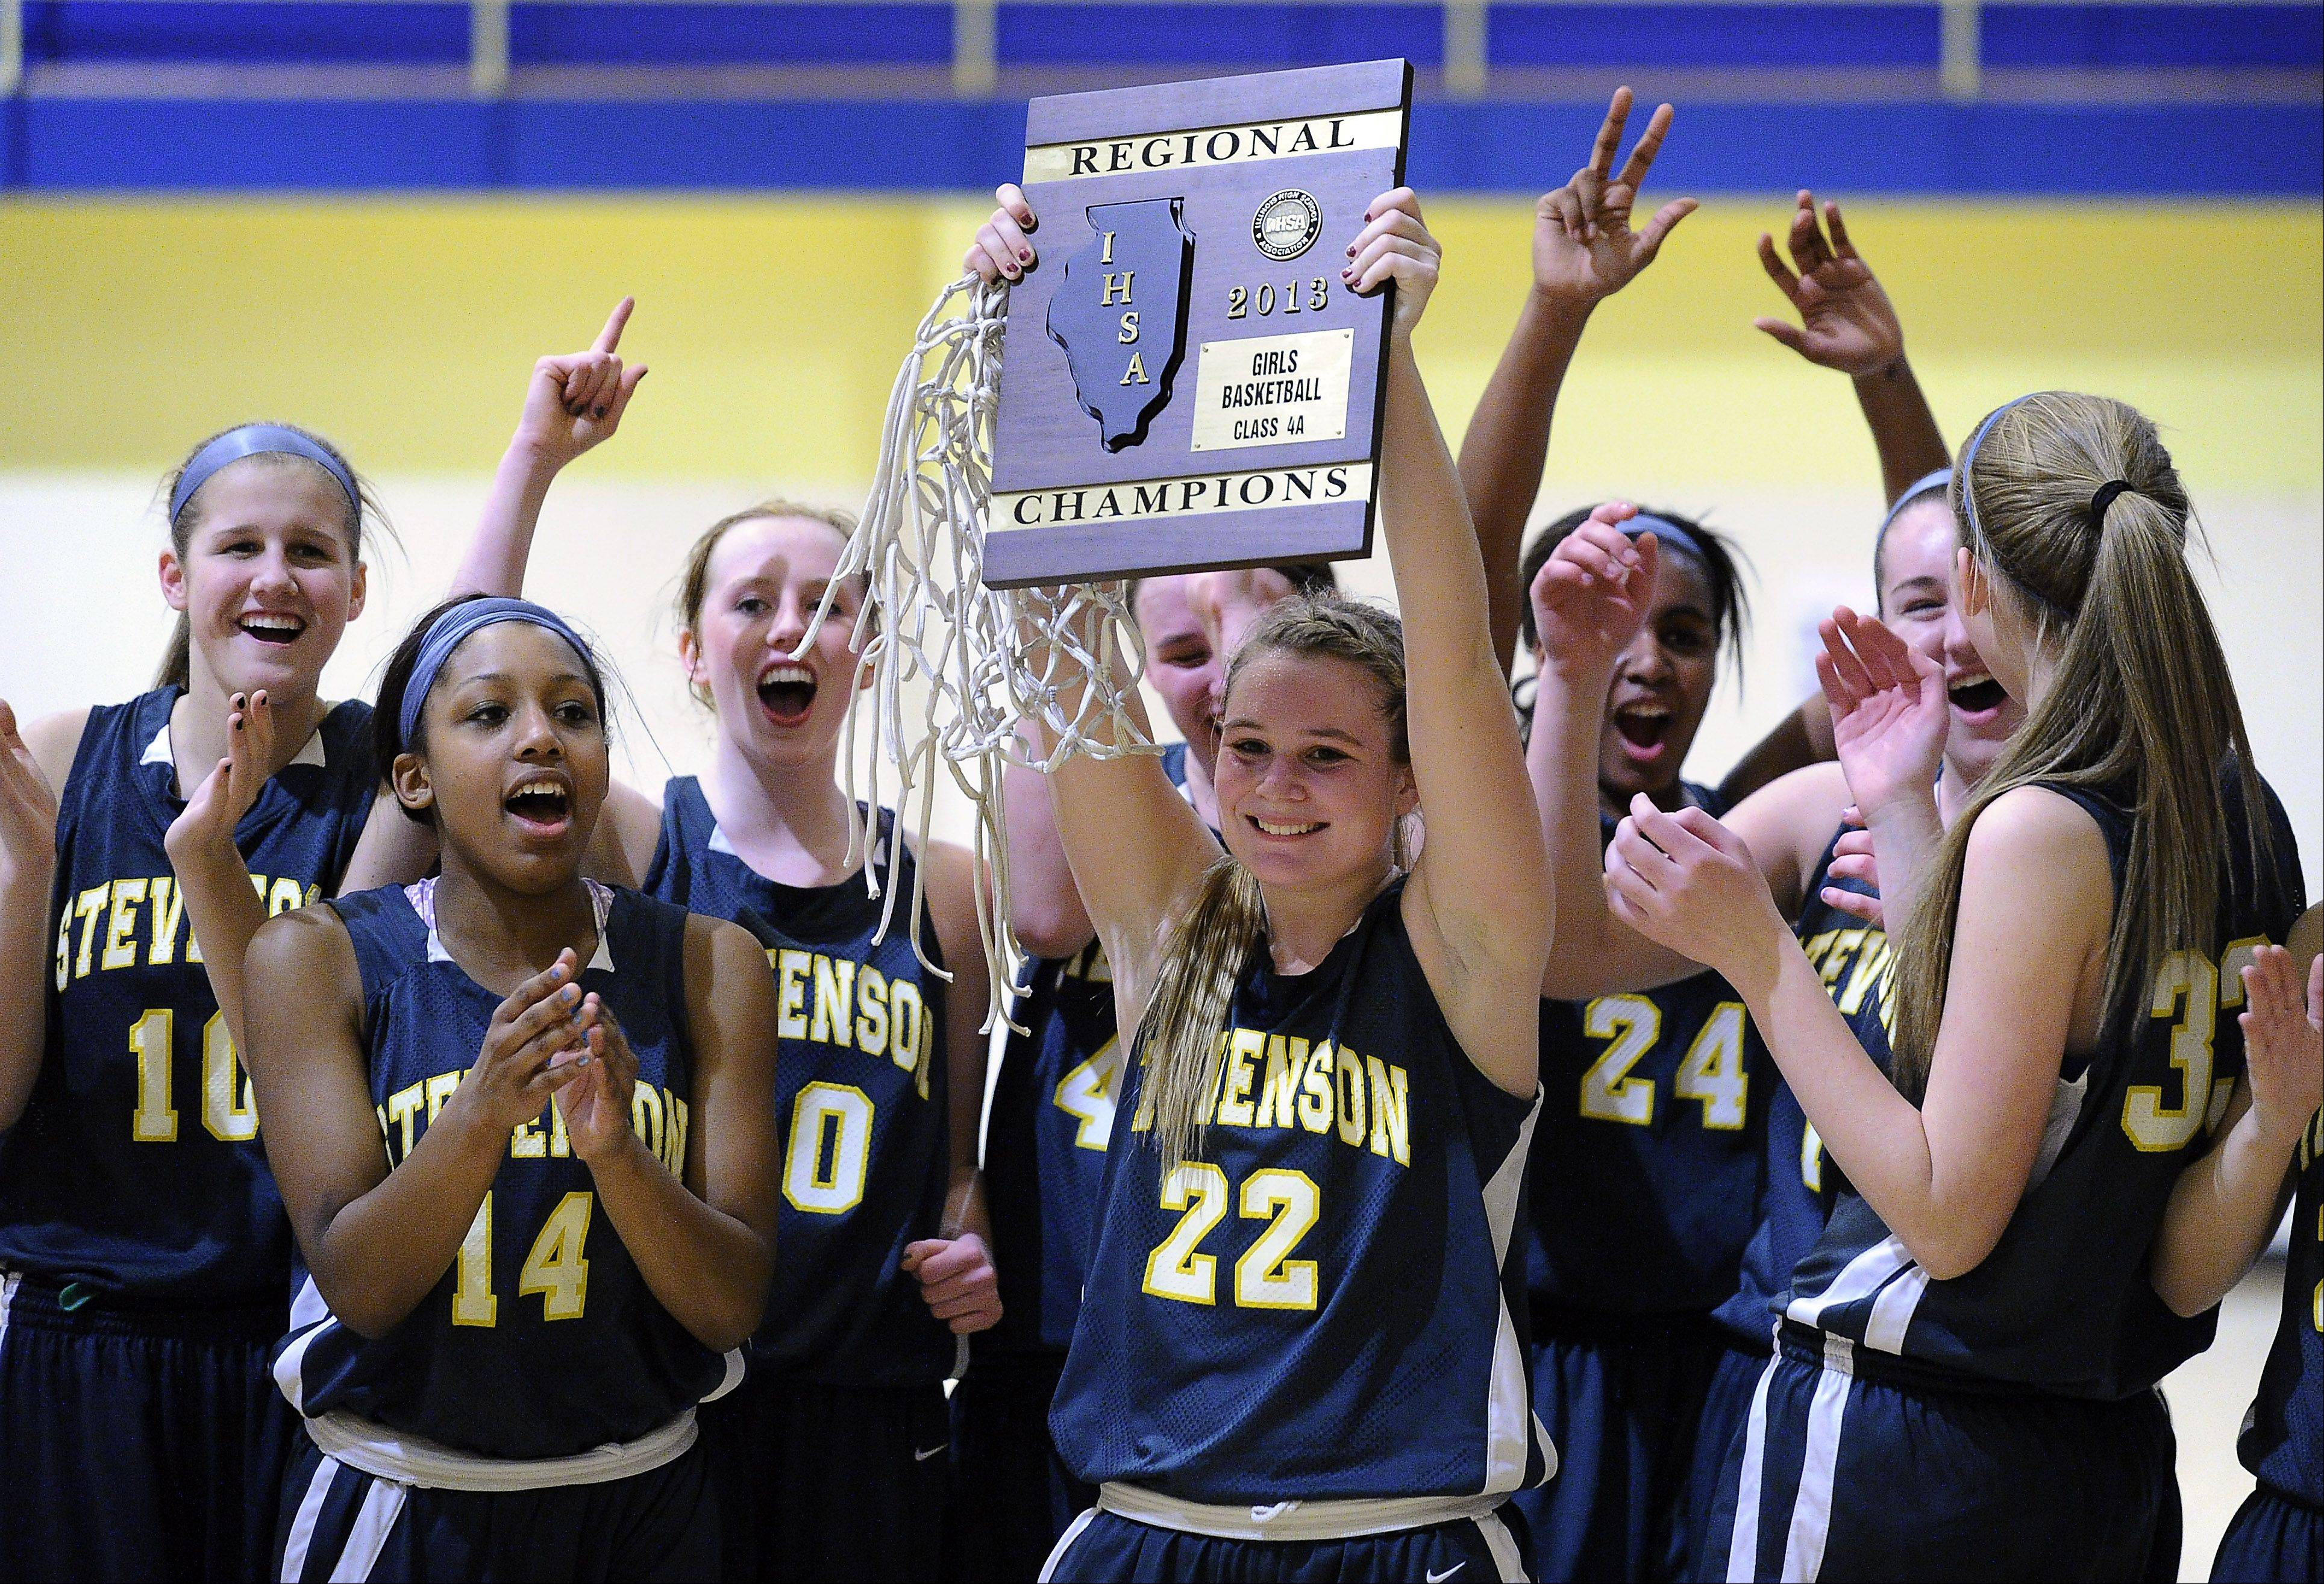 Stevenson's Kari Moffat holds up the regional championship plaque while the rest of her teammates celebrate after the Patriots beat Palatine in the Class 4A regional final at Wheeling on Thursday.